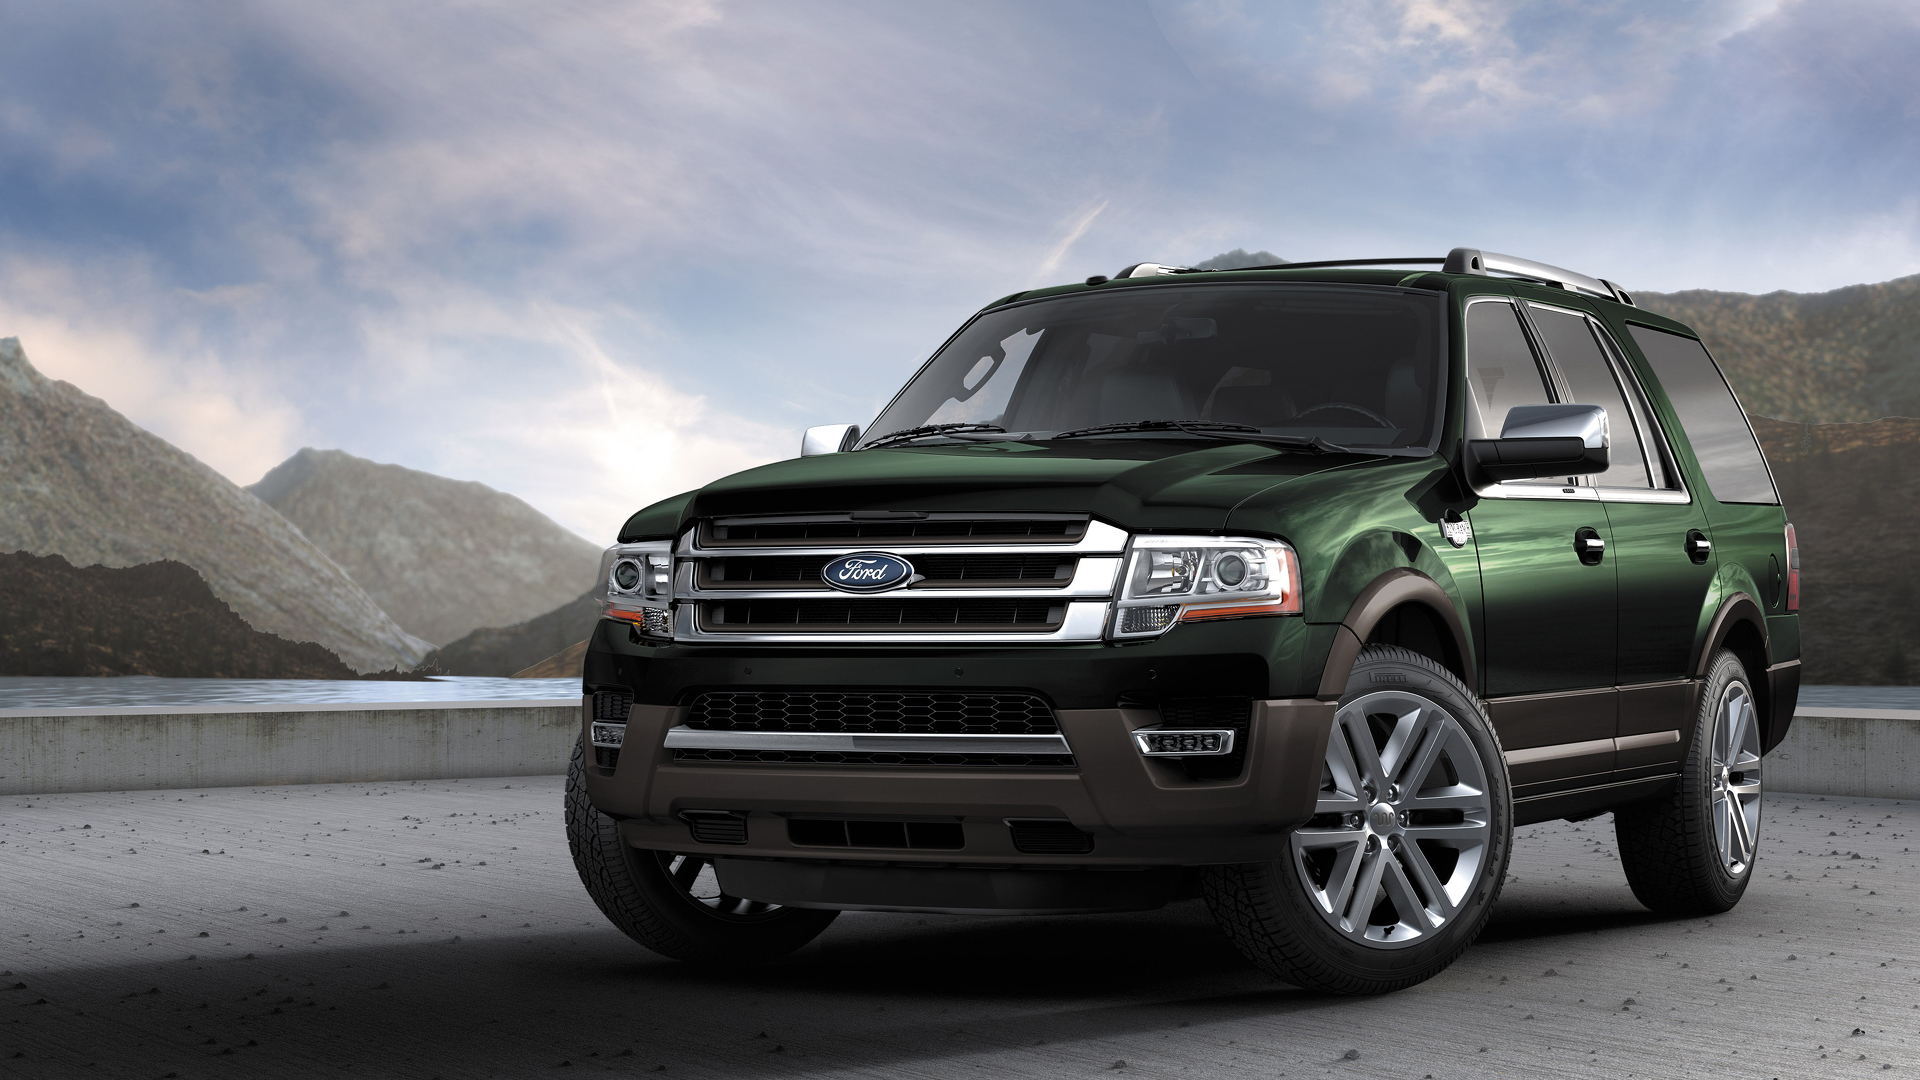 Ford F 150 Platinum For Sale >> Ford Expedition News and Reviews | Motor1.com